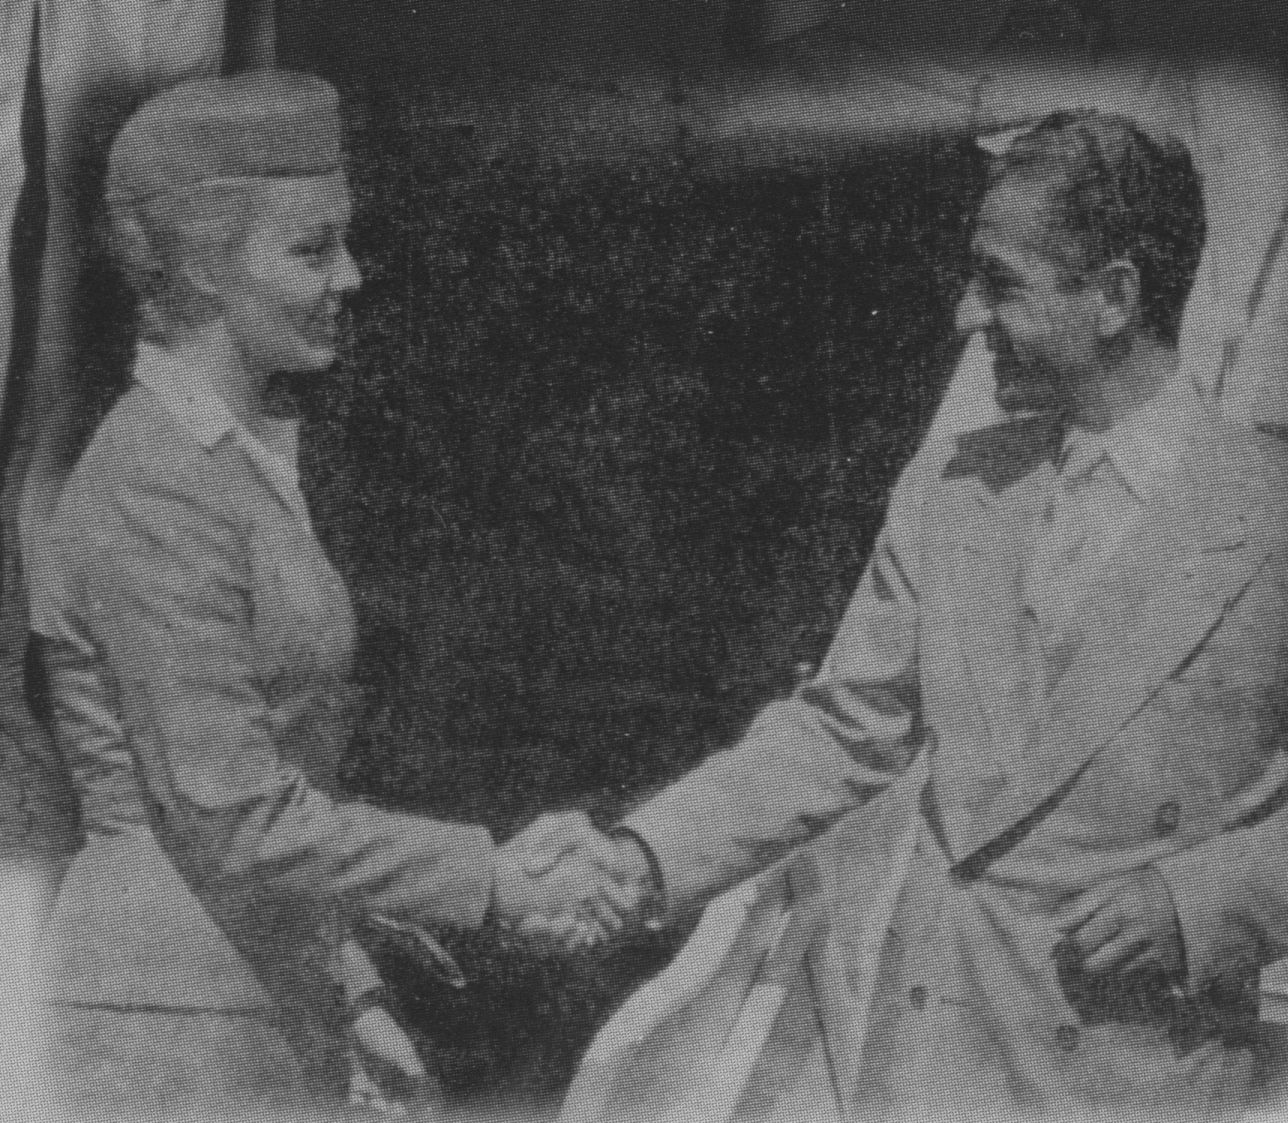 1958 Upon arrival in San Francisco from Honolulu Pan Am stewardess Ellen Forseth bids farewell to the last Shah of Iran.